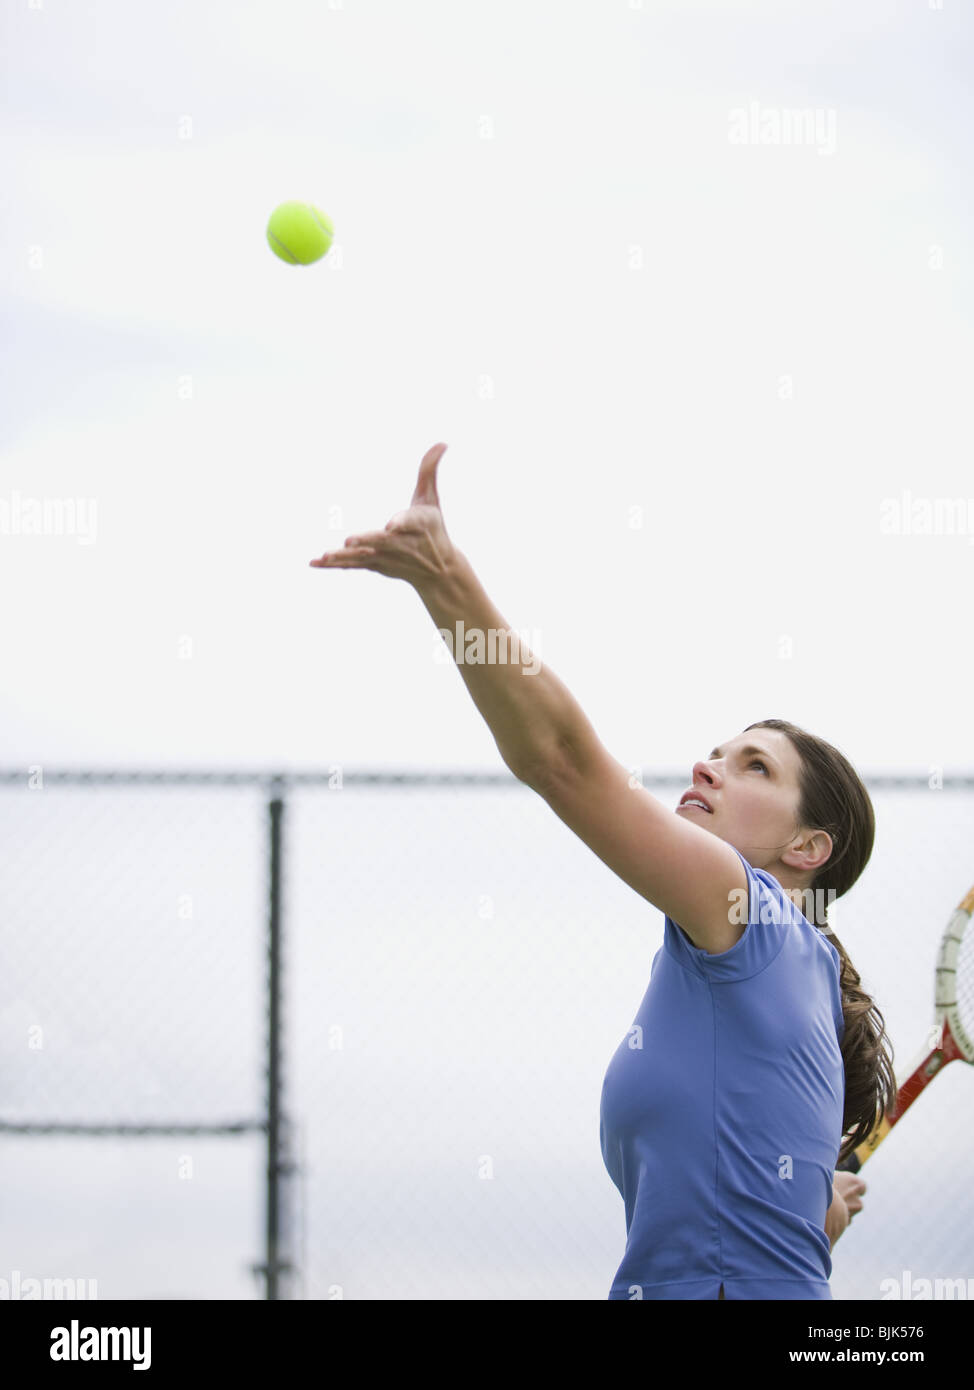 Woman tossing tennis ball in air to serve - Stock Image